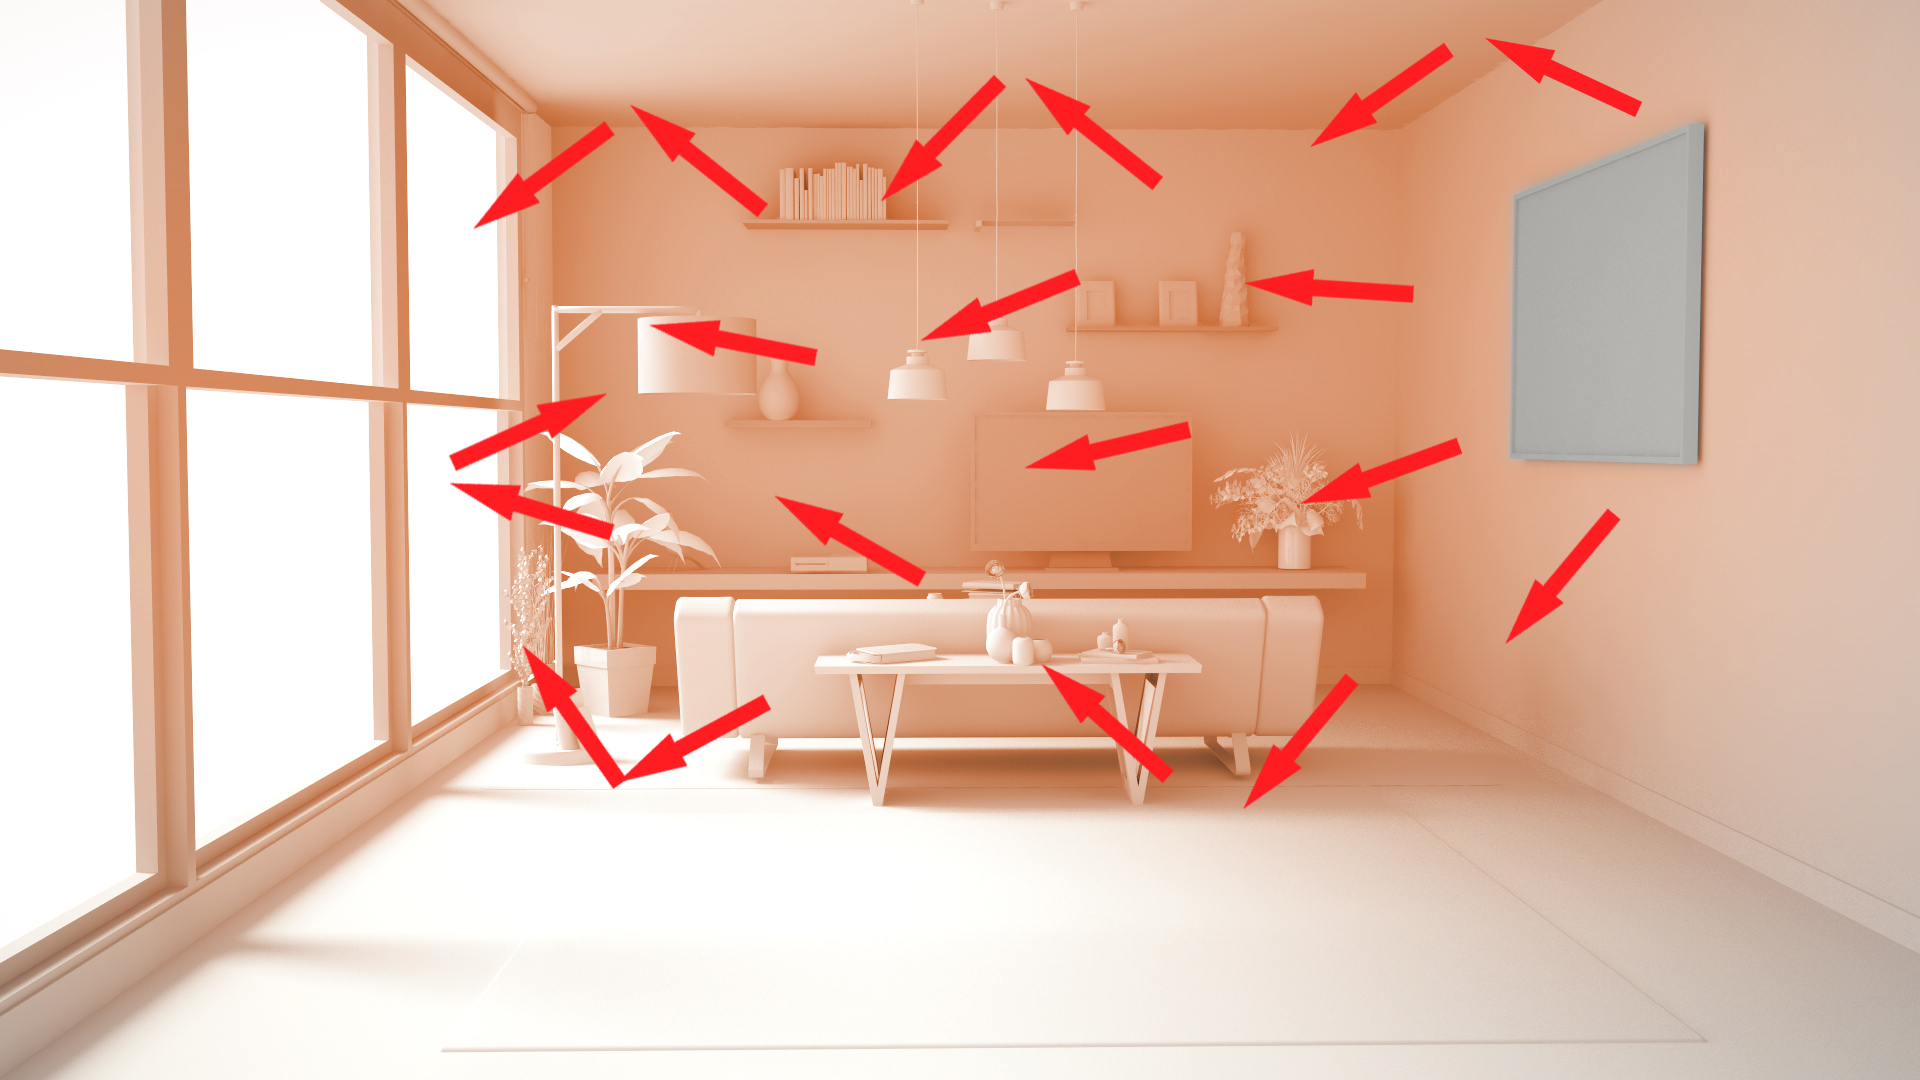 Wall Infrared Heating Panel - How Does It Work